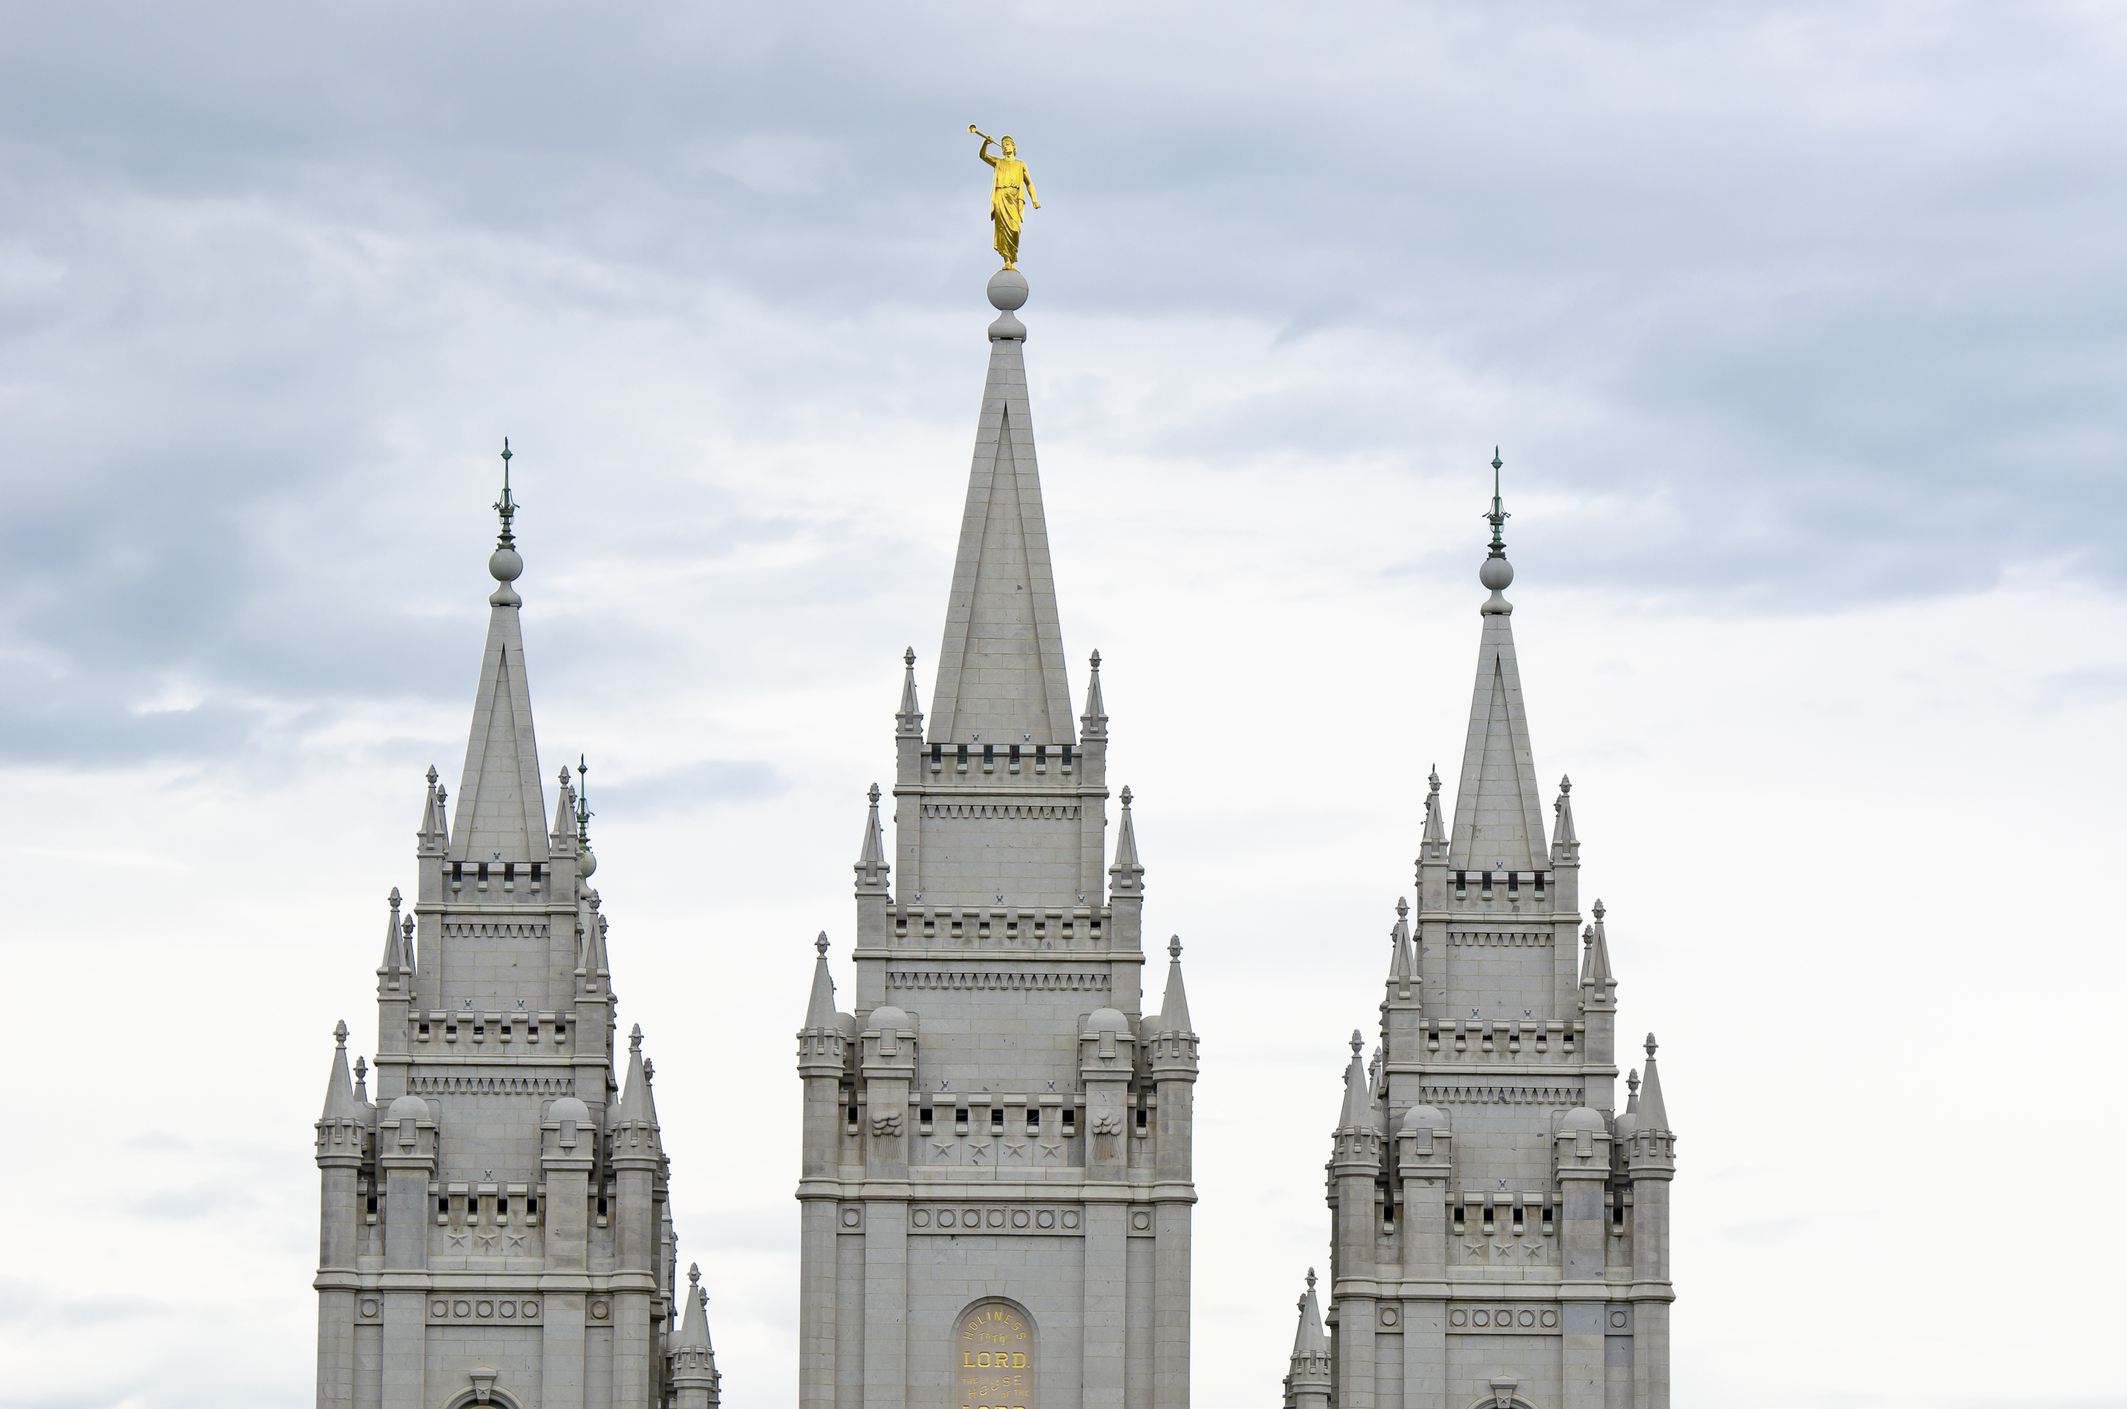 Church of the Latter-day Saints temple in Salt Lake City